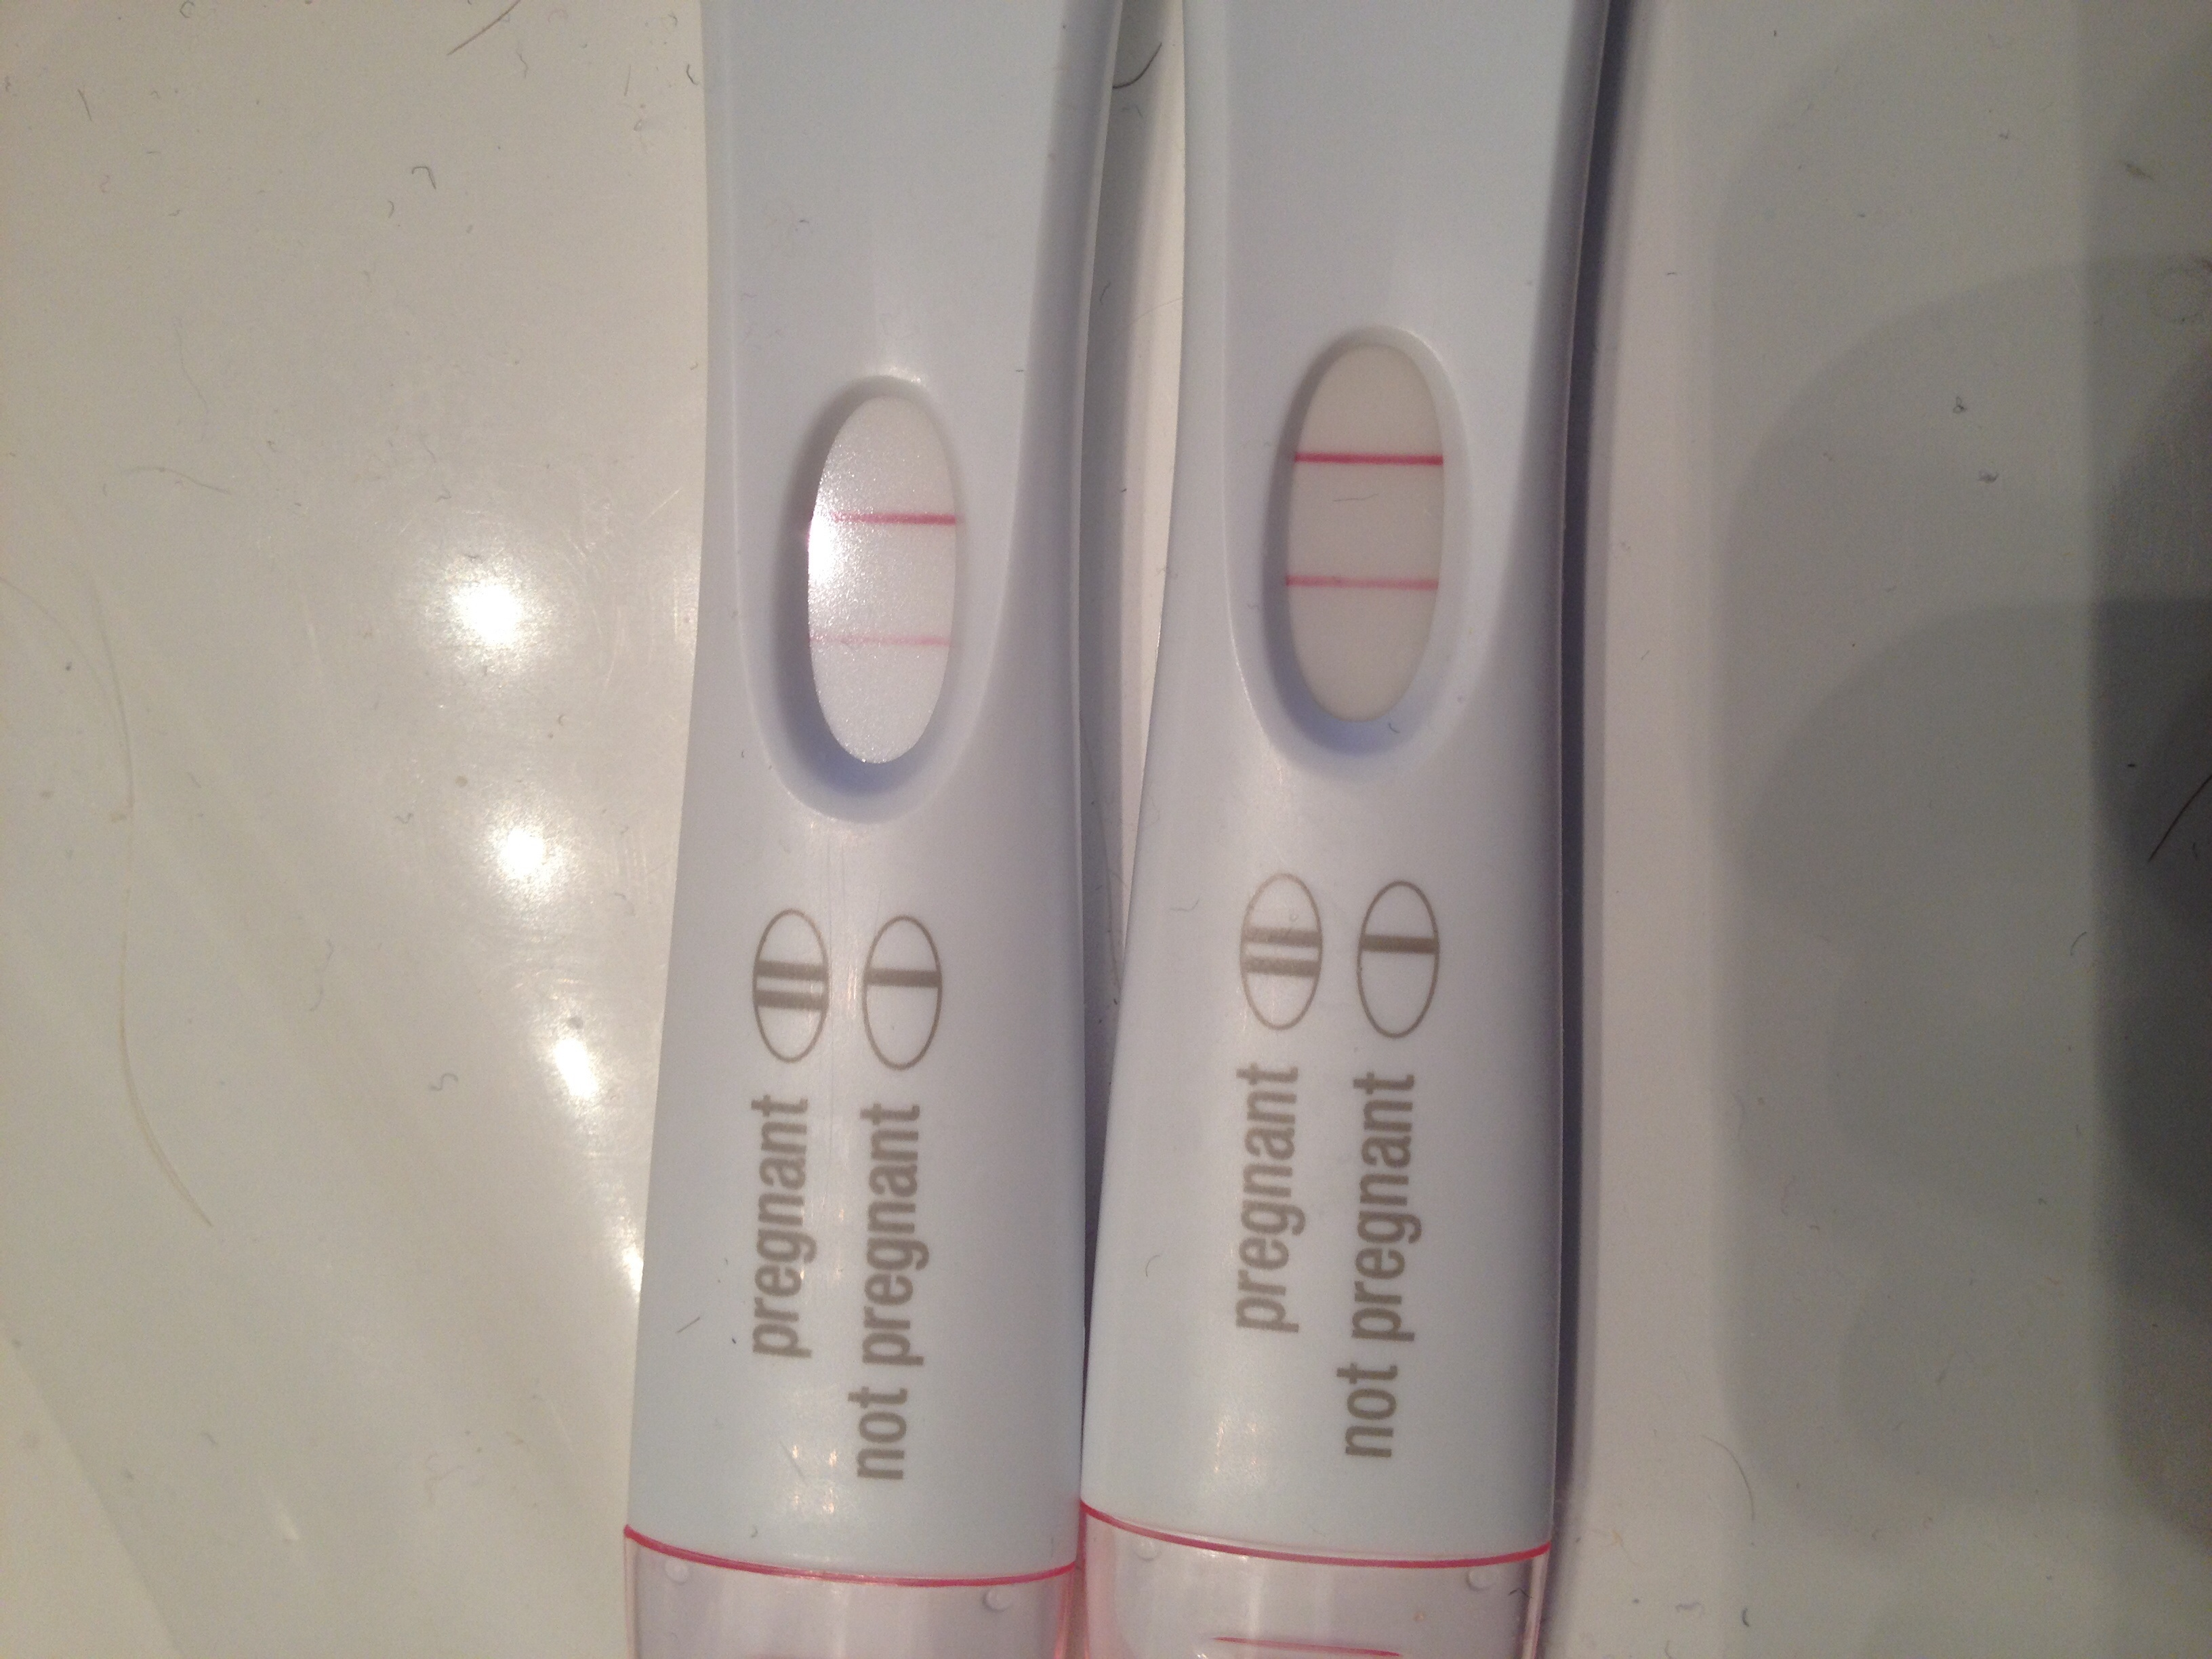 how to tell if a pregnancy test is positive